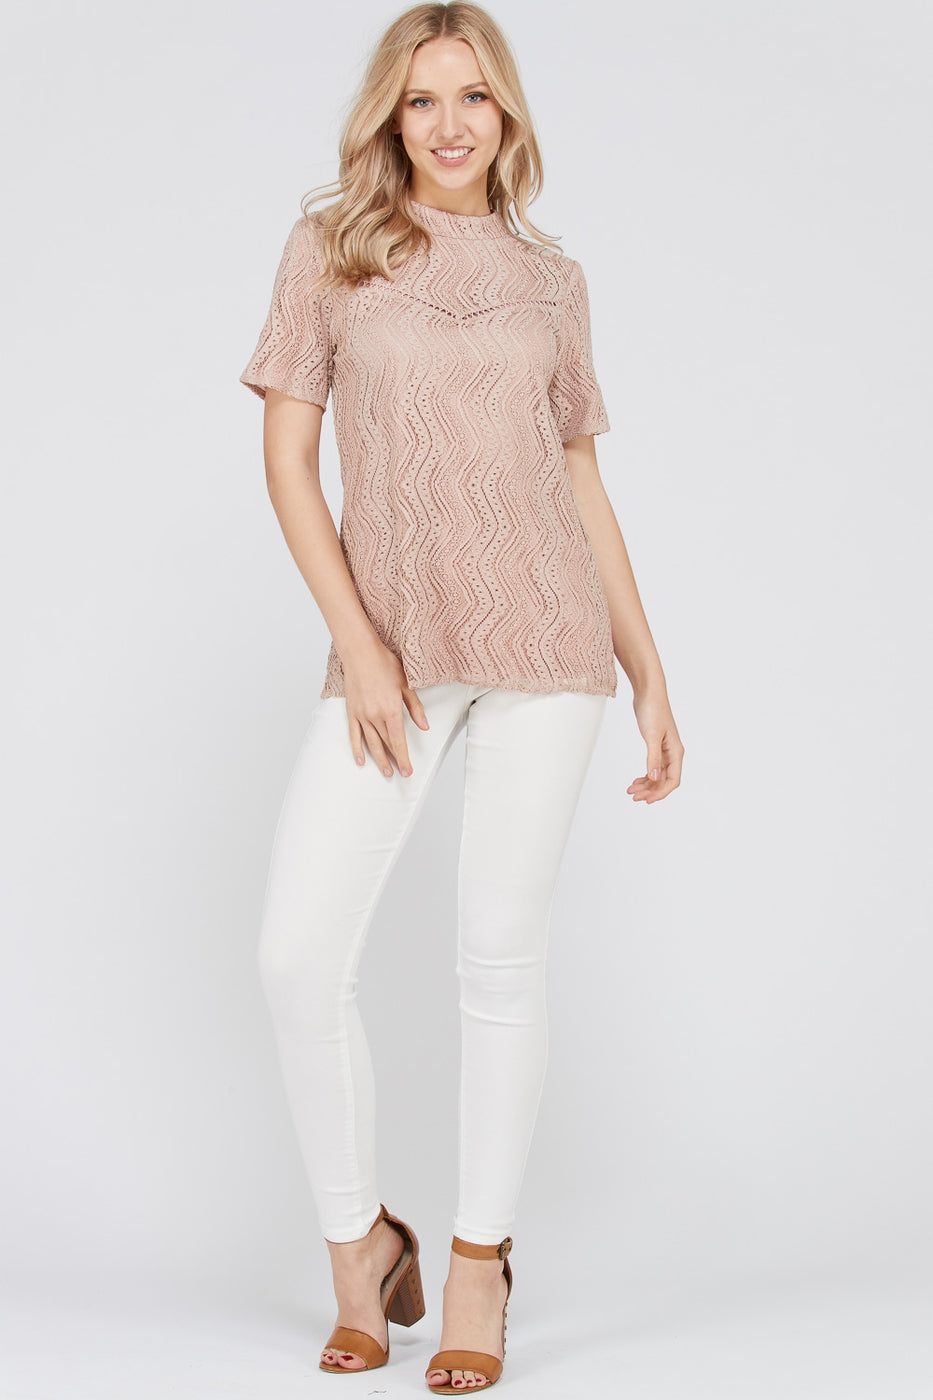 Charming Short Sleeve Top All Over Lace With Crew Neck In Mauve Siin Bees